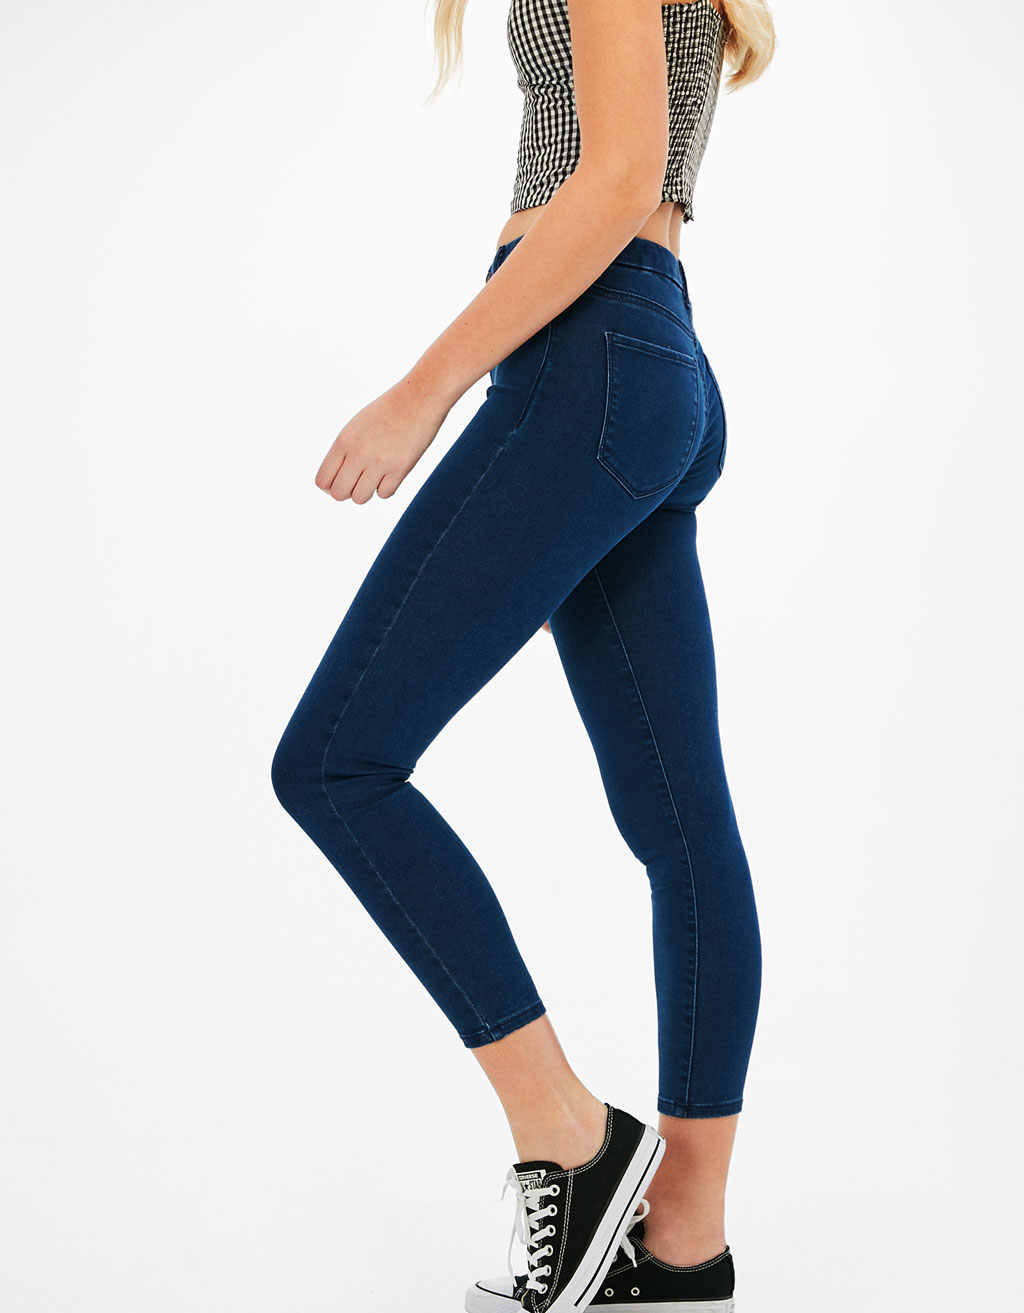 Skinny Cropped stretchy jeans